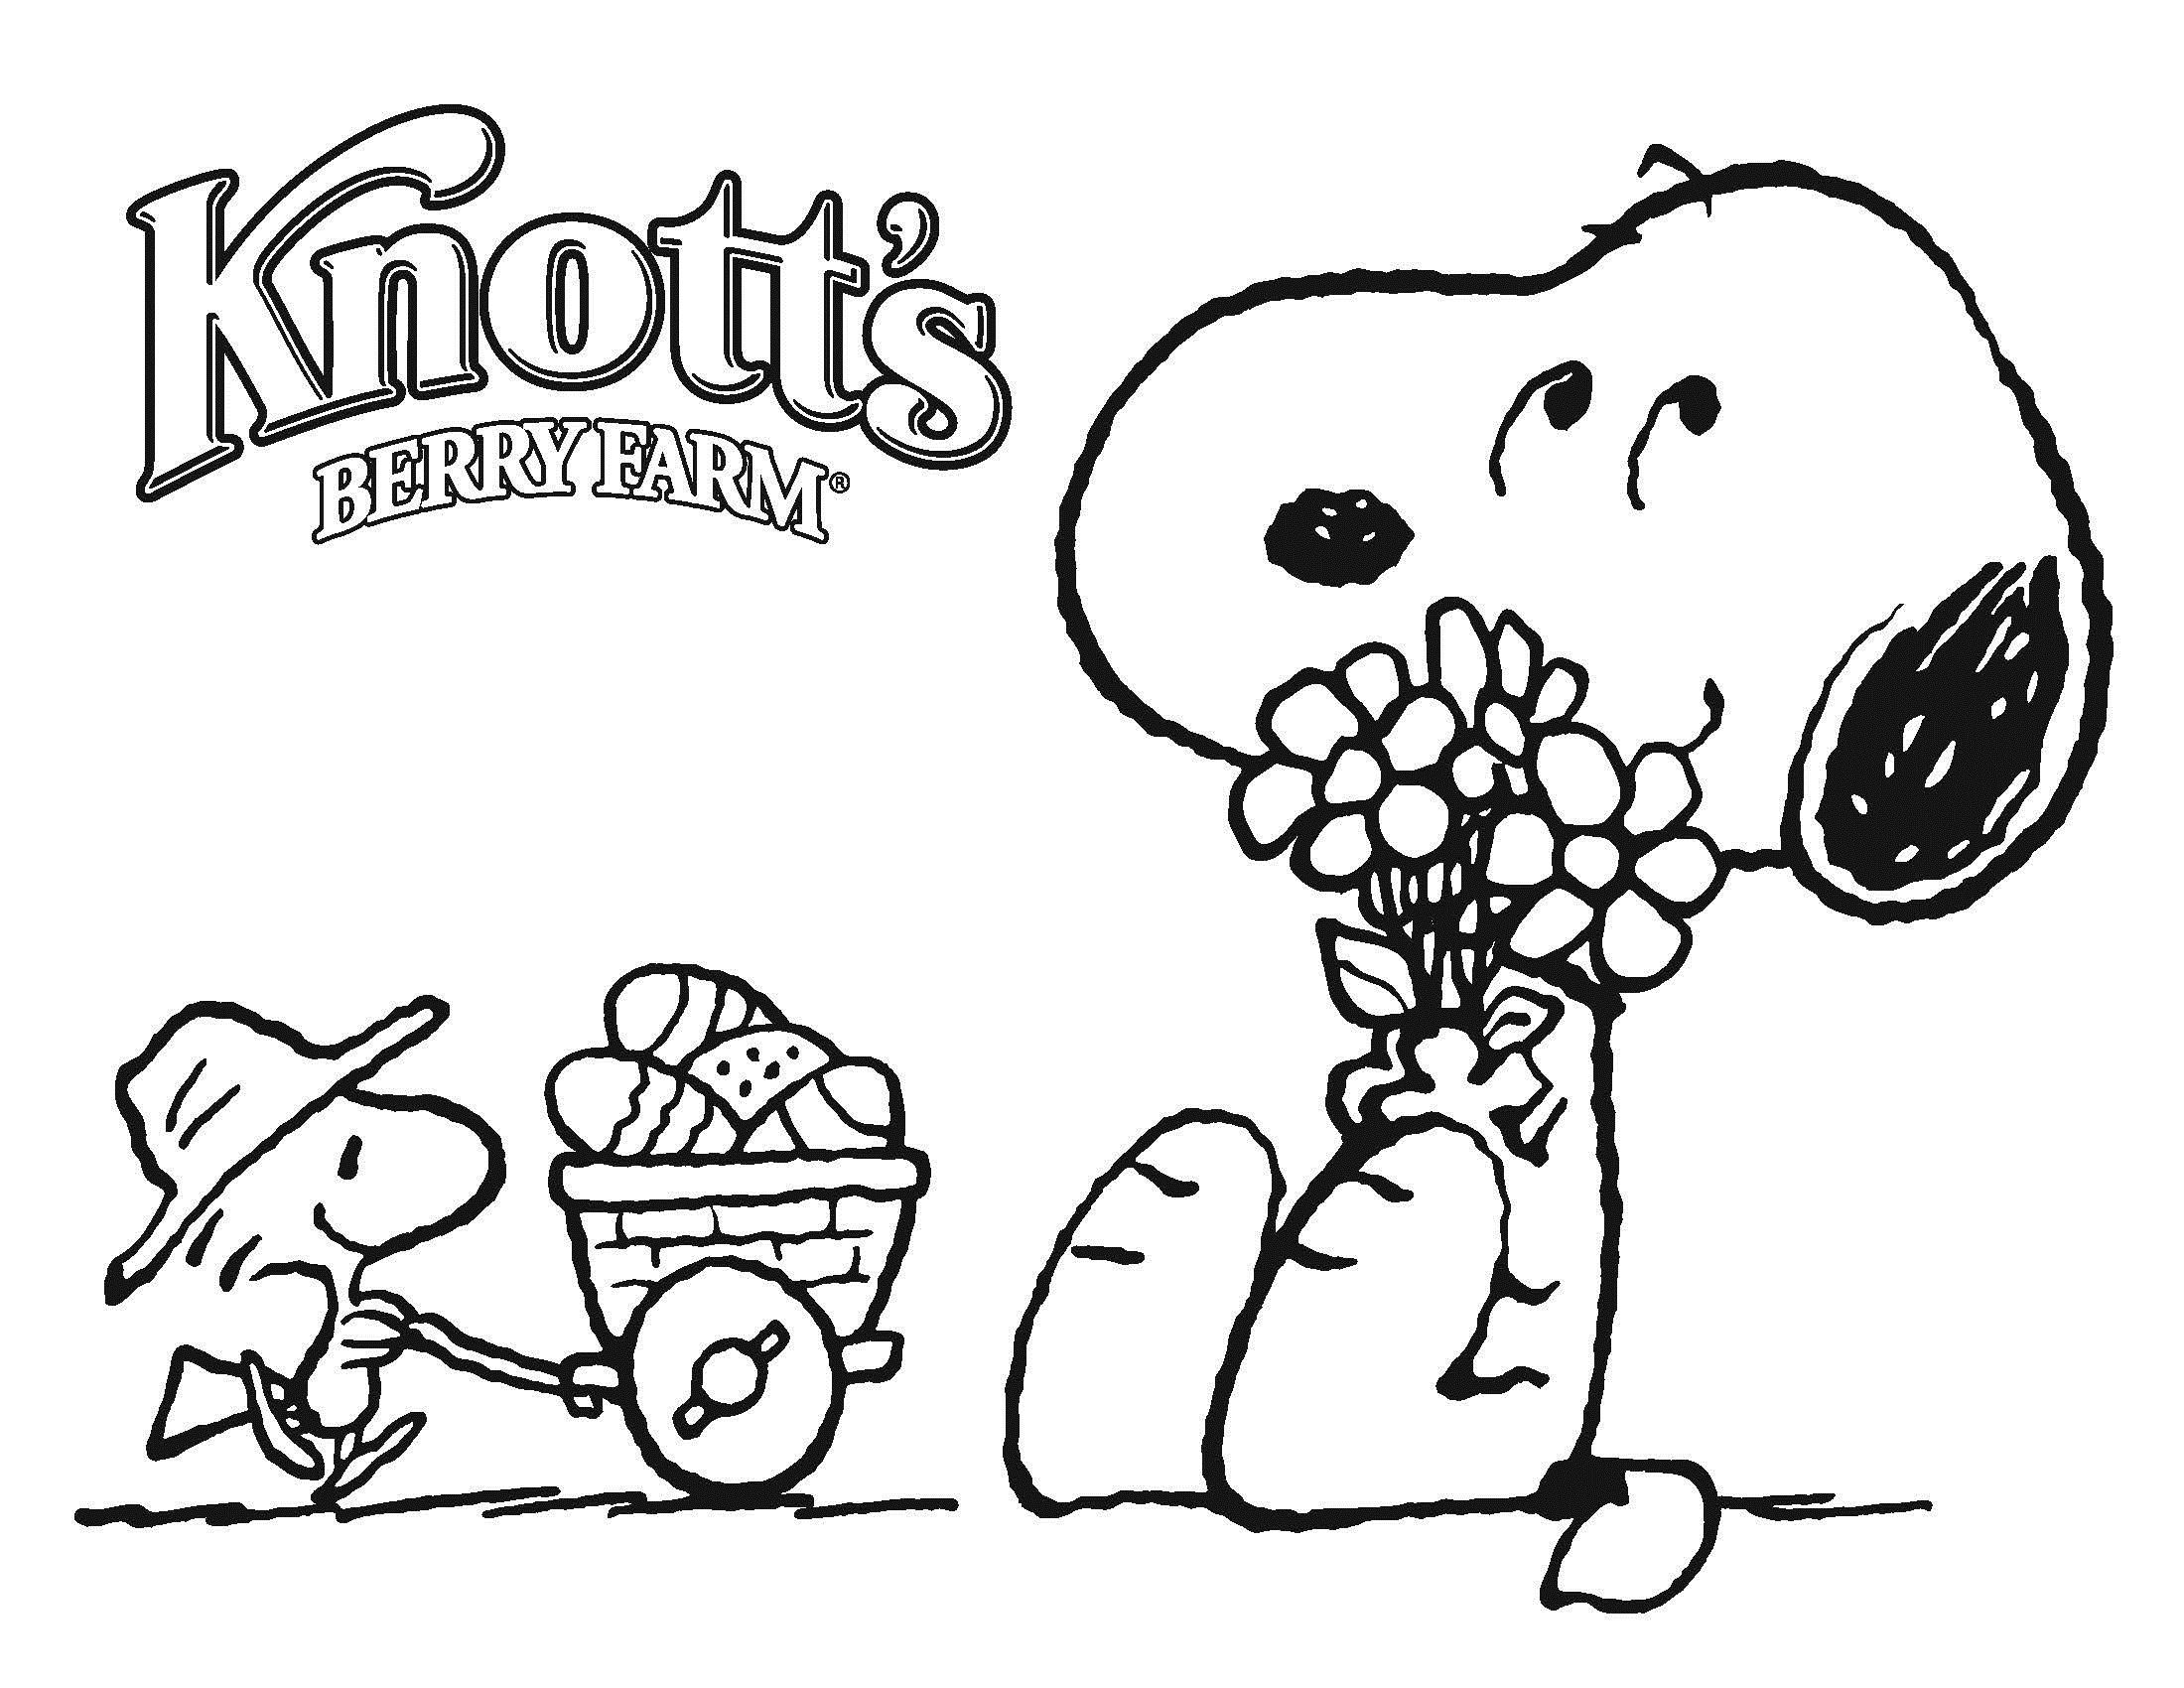 free printable snoopy coloring pages for kids - Suzy Zoo Coloring Pages Printable